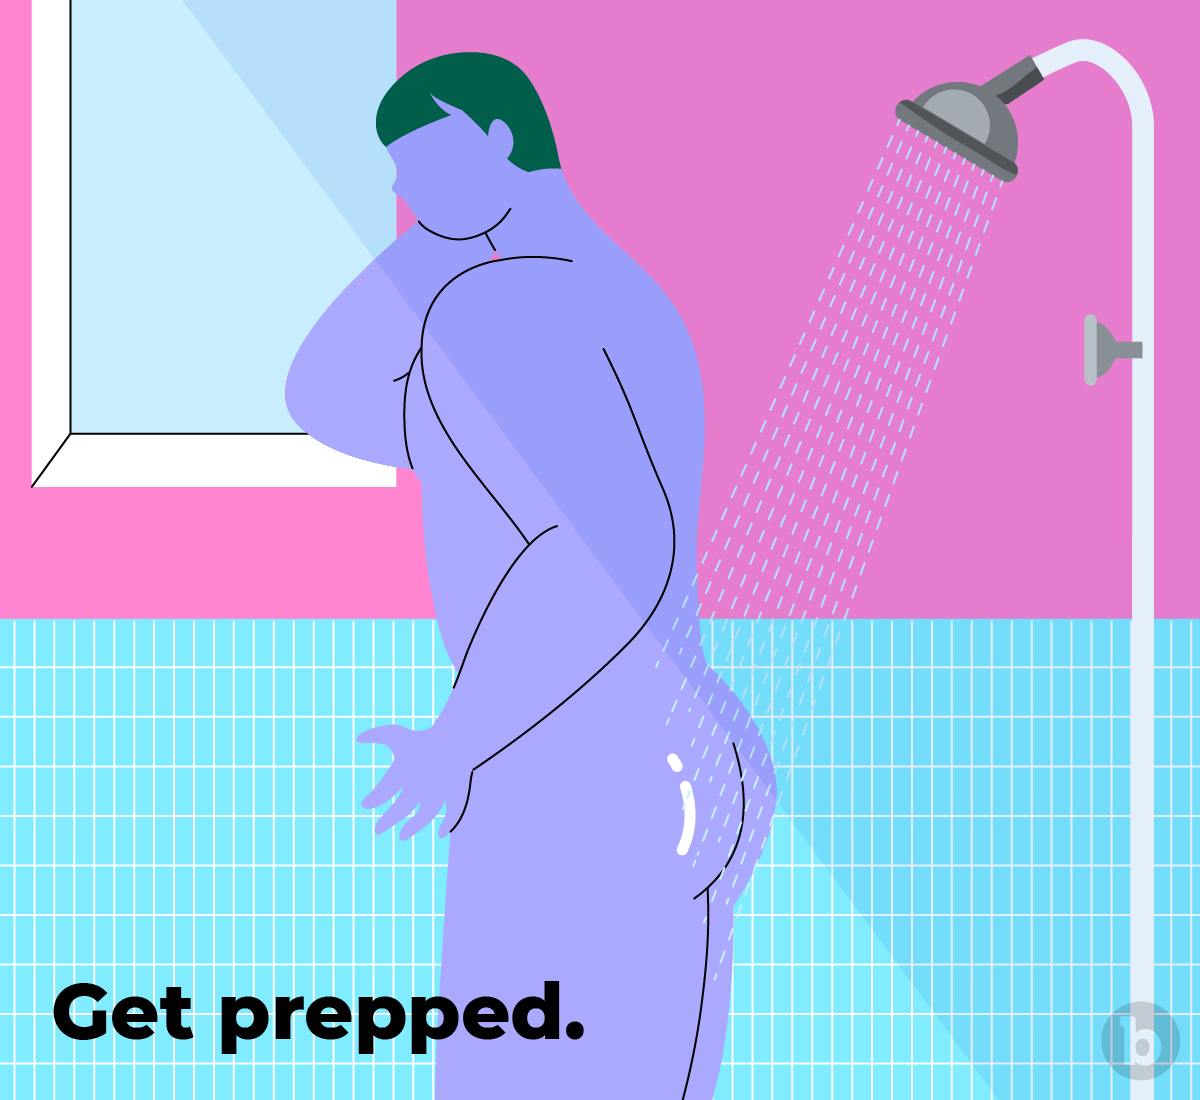 Preparation is the key to having comfortable anal play